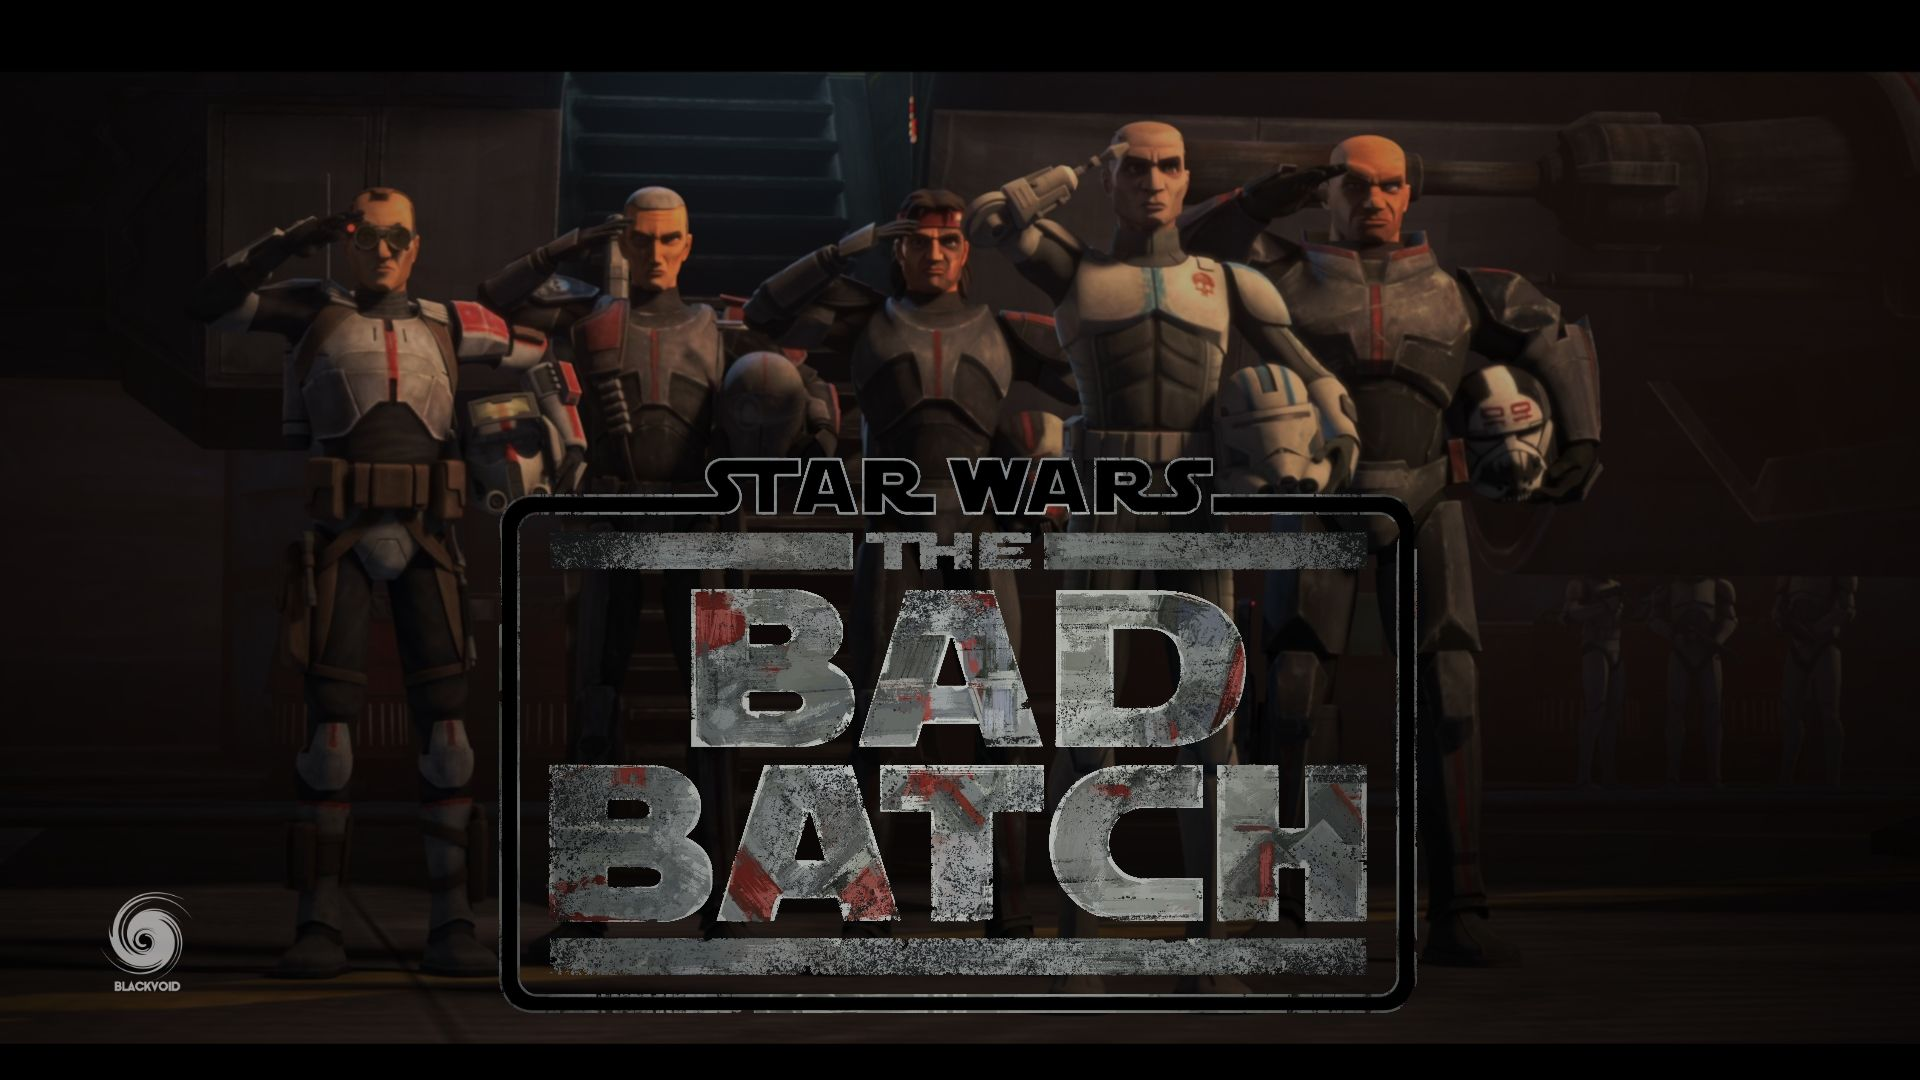 New animated Star Wars tv show is coming - The Bad Batch